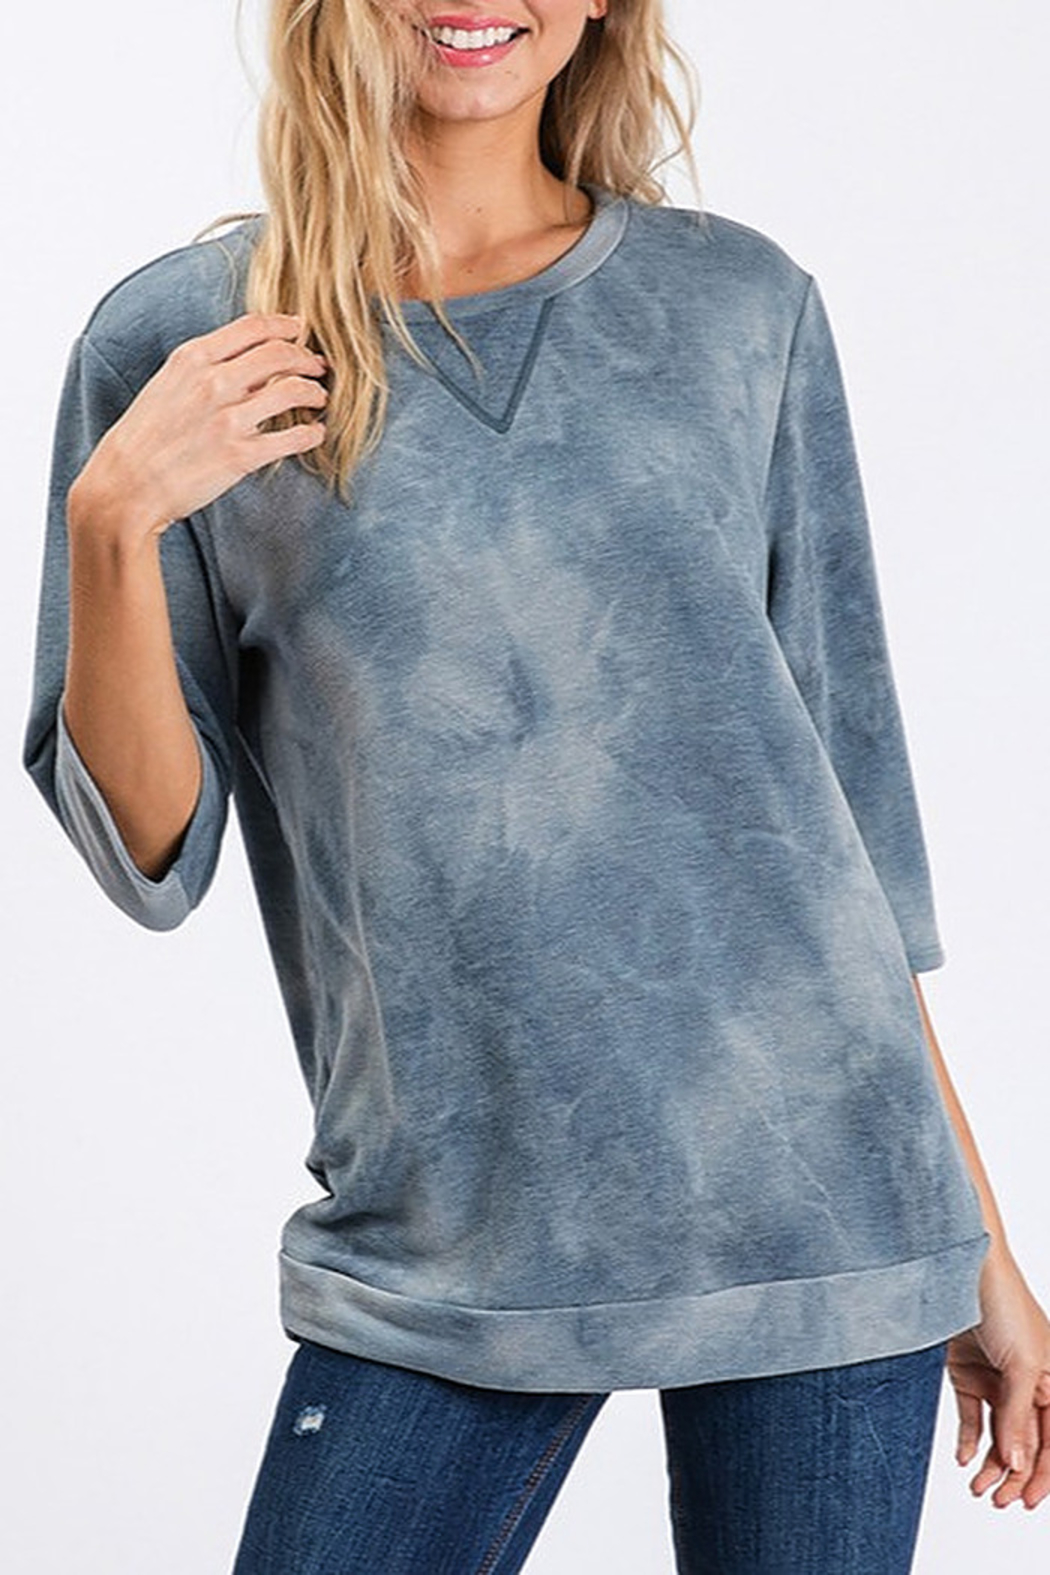 CY Fashion Tie Dye Top - Main Image